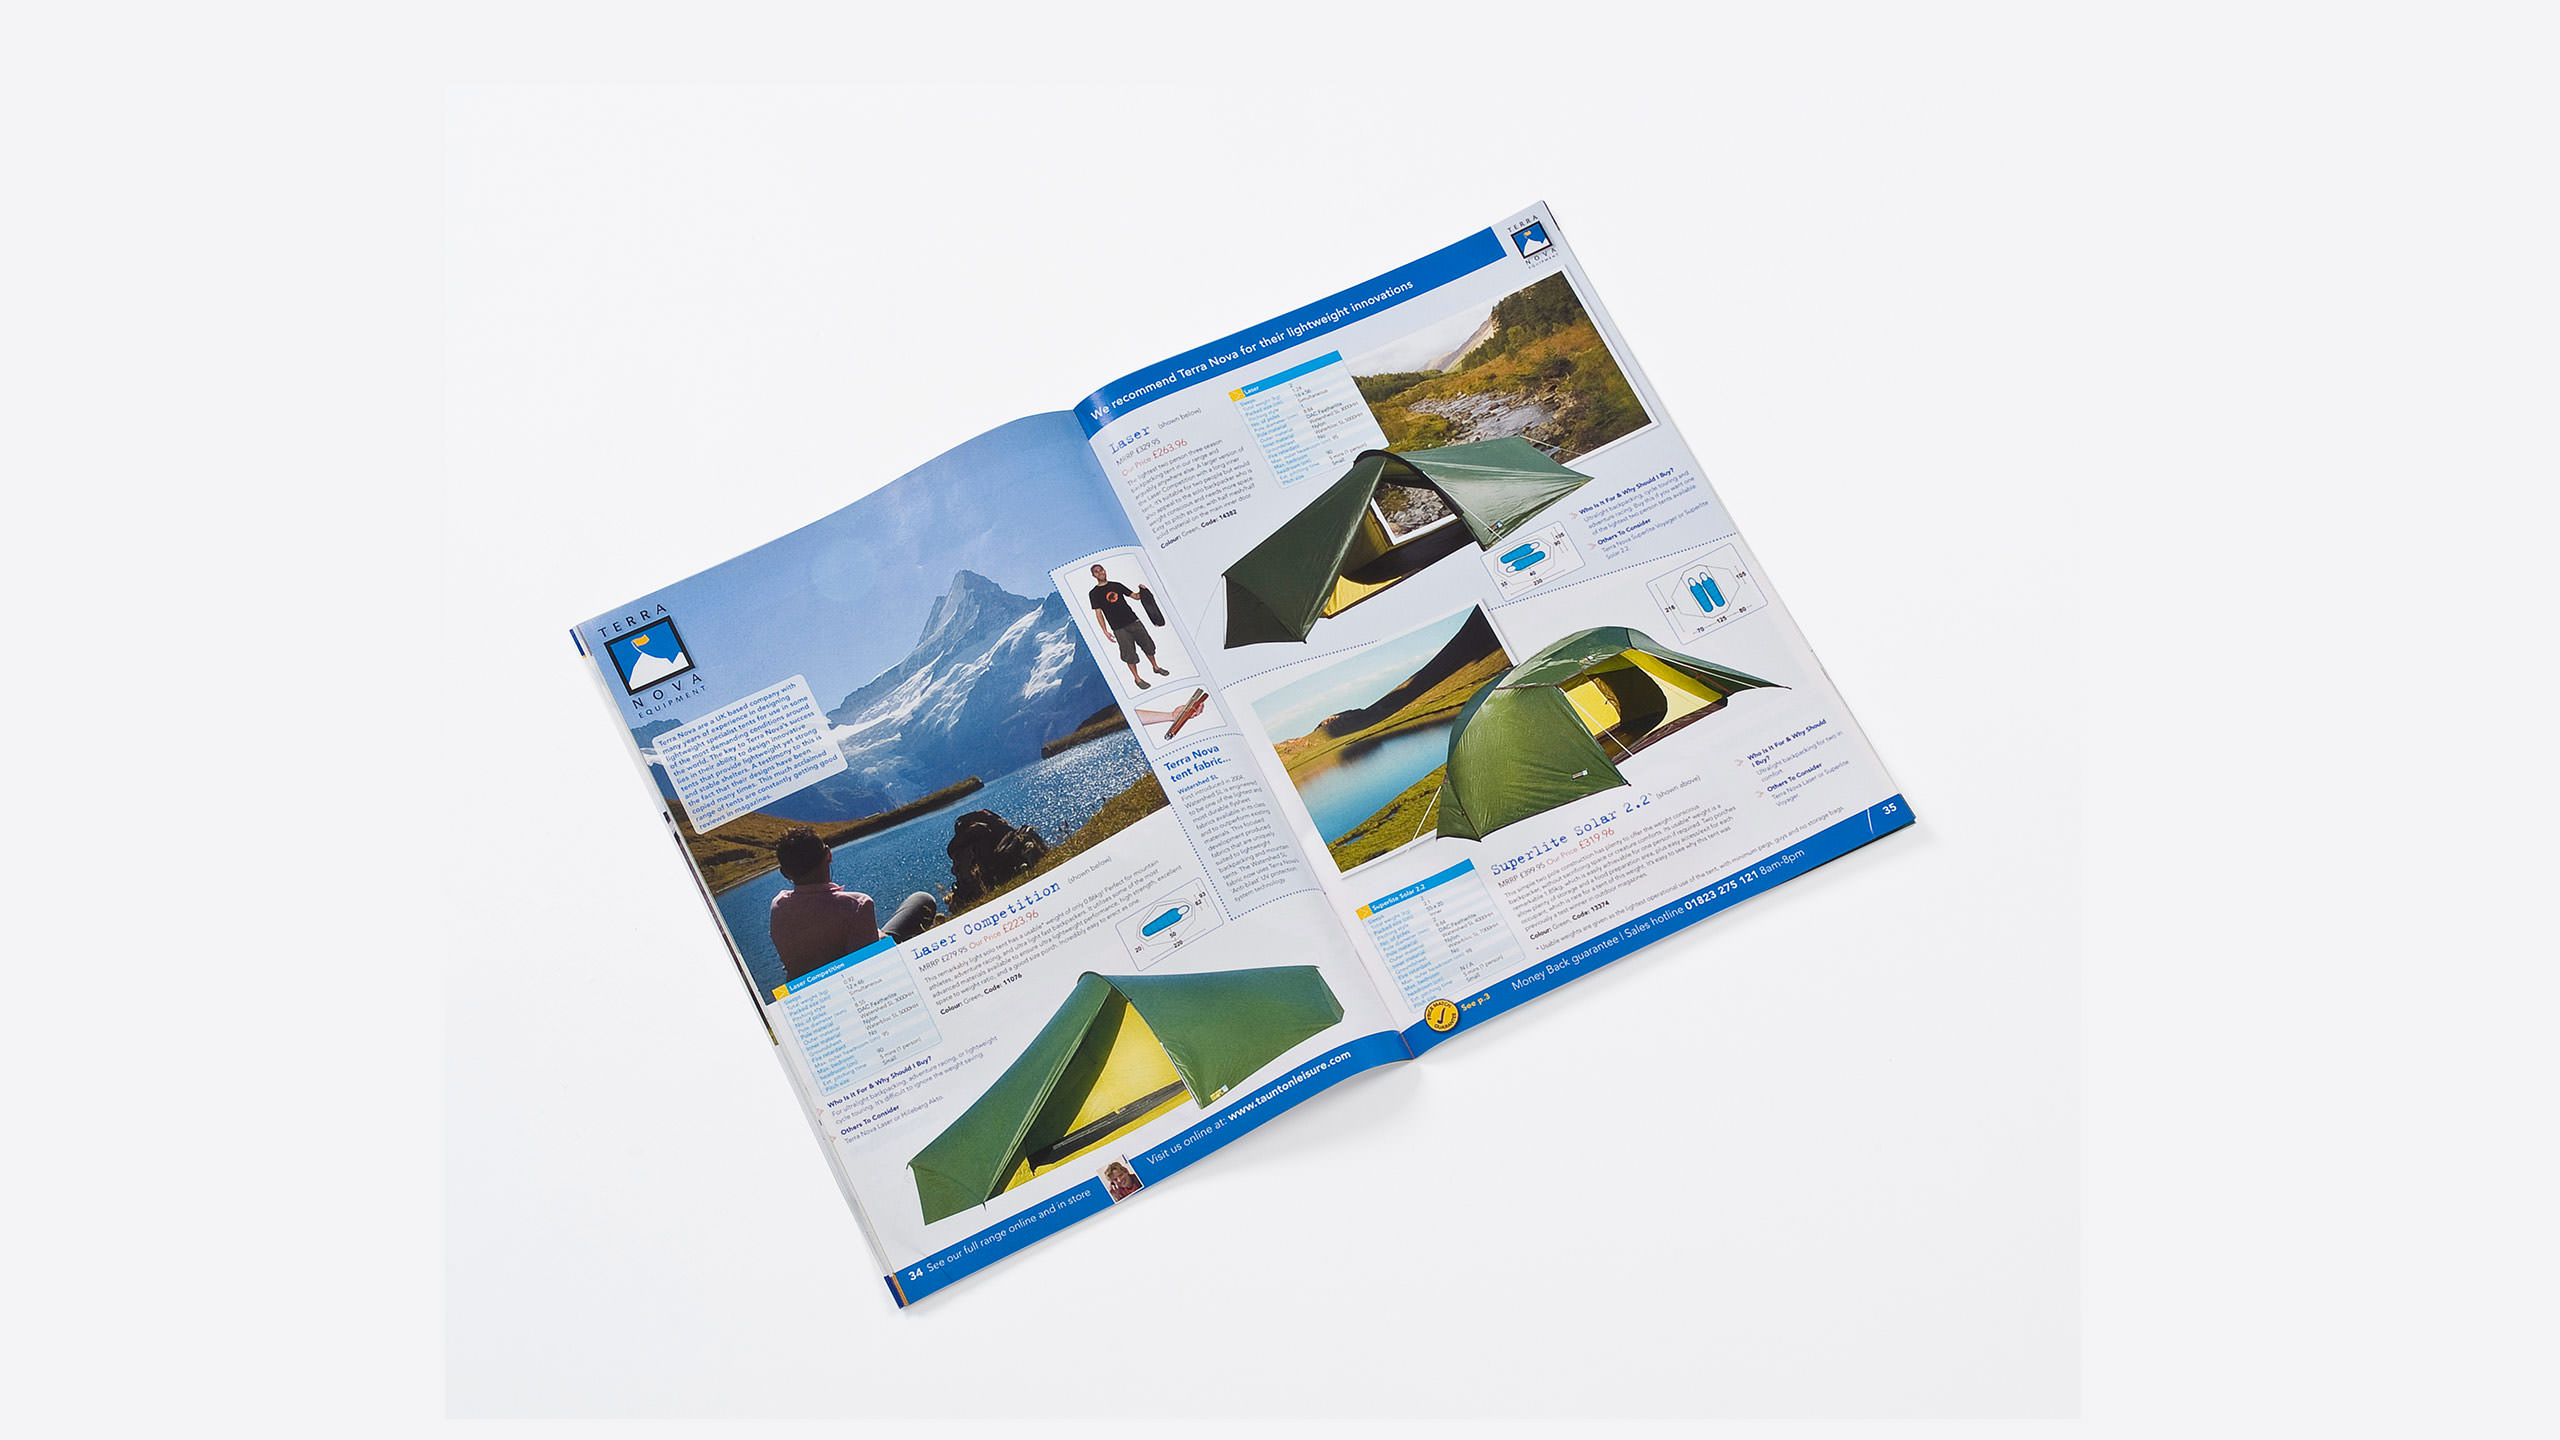 sc 1 st  TA Design & Taunton Leisure (Tents) | TA Design